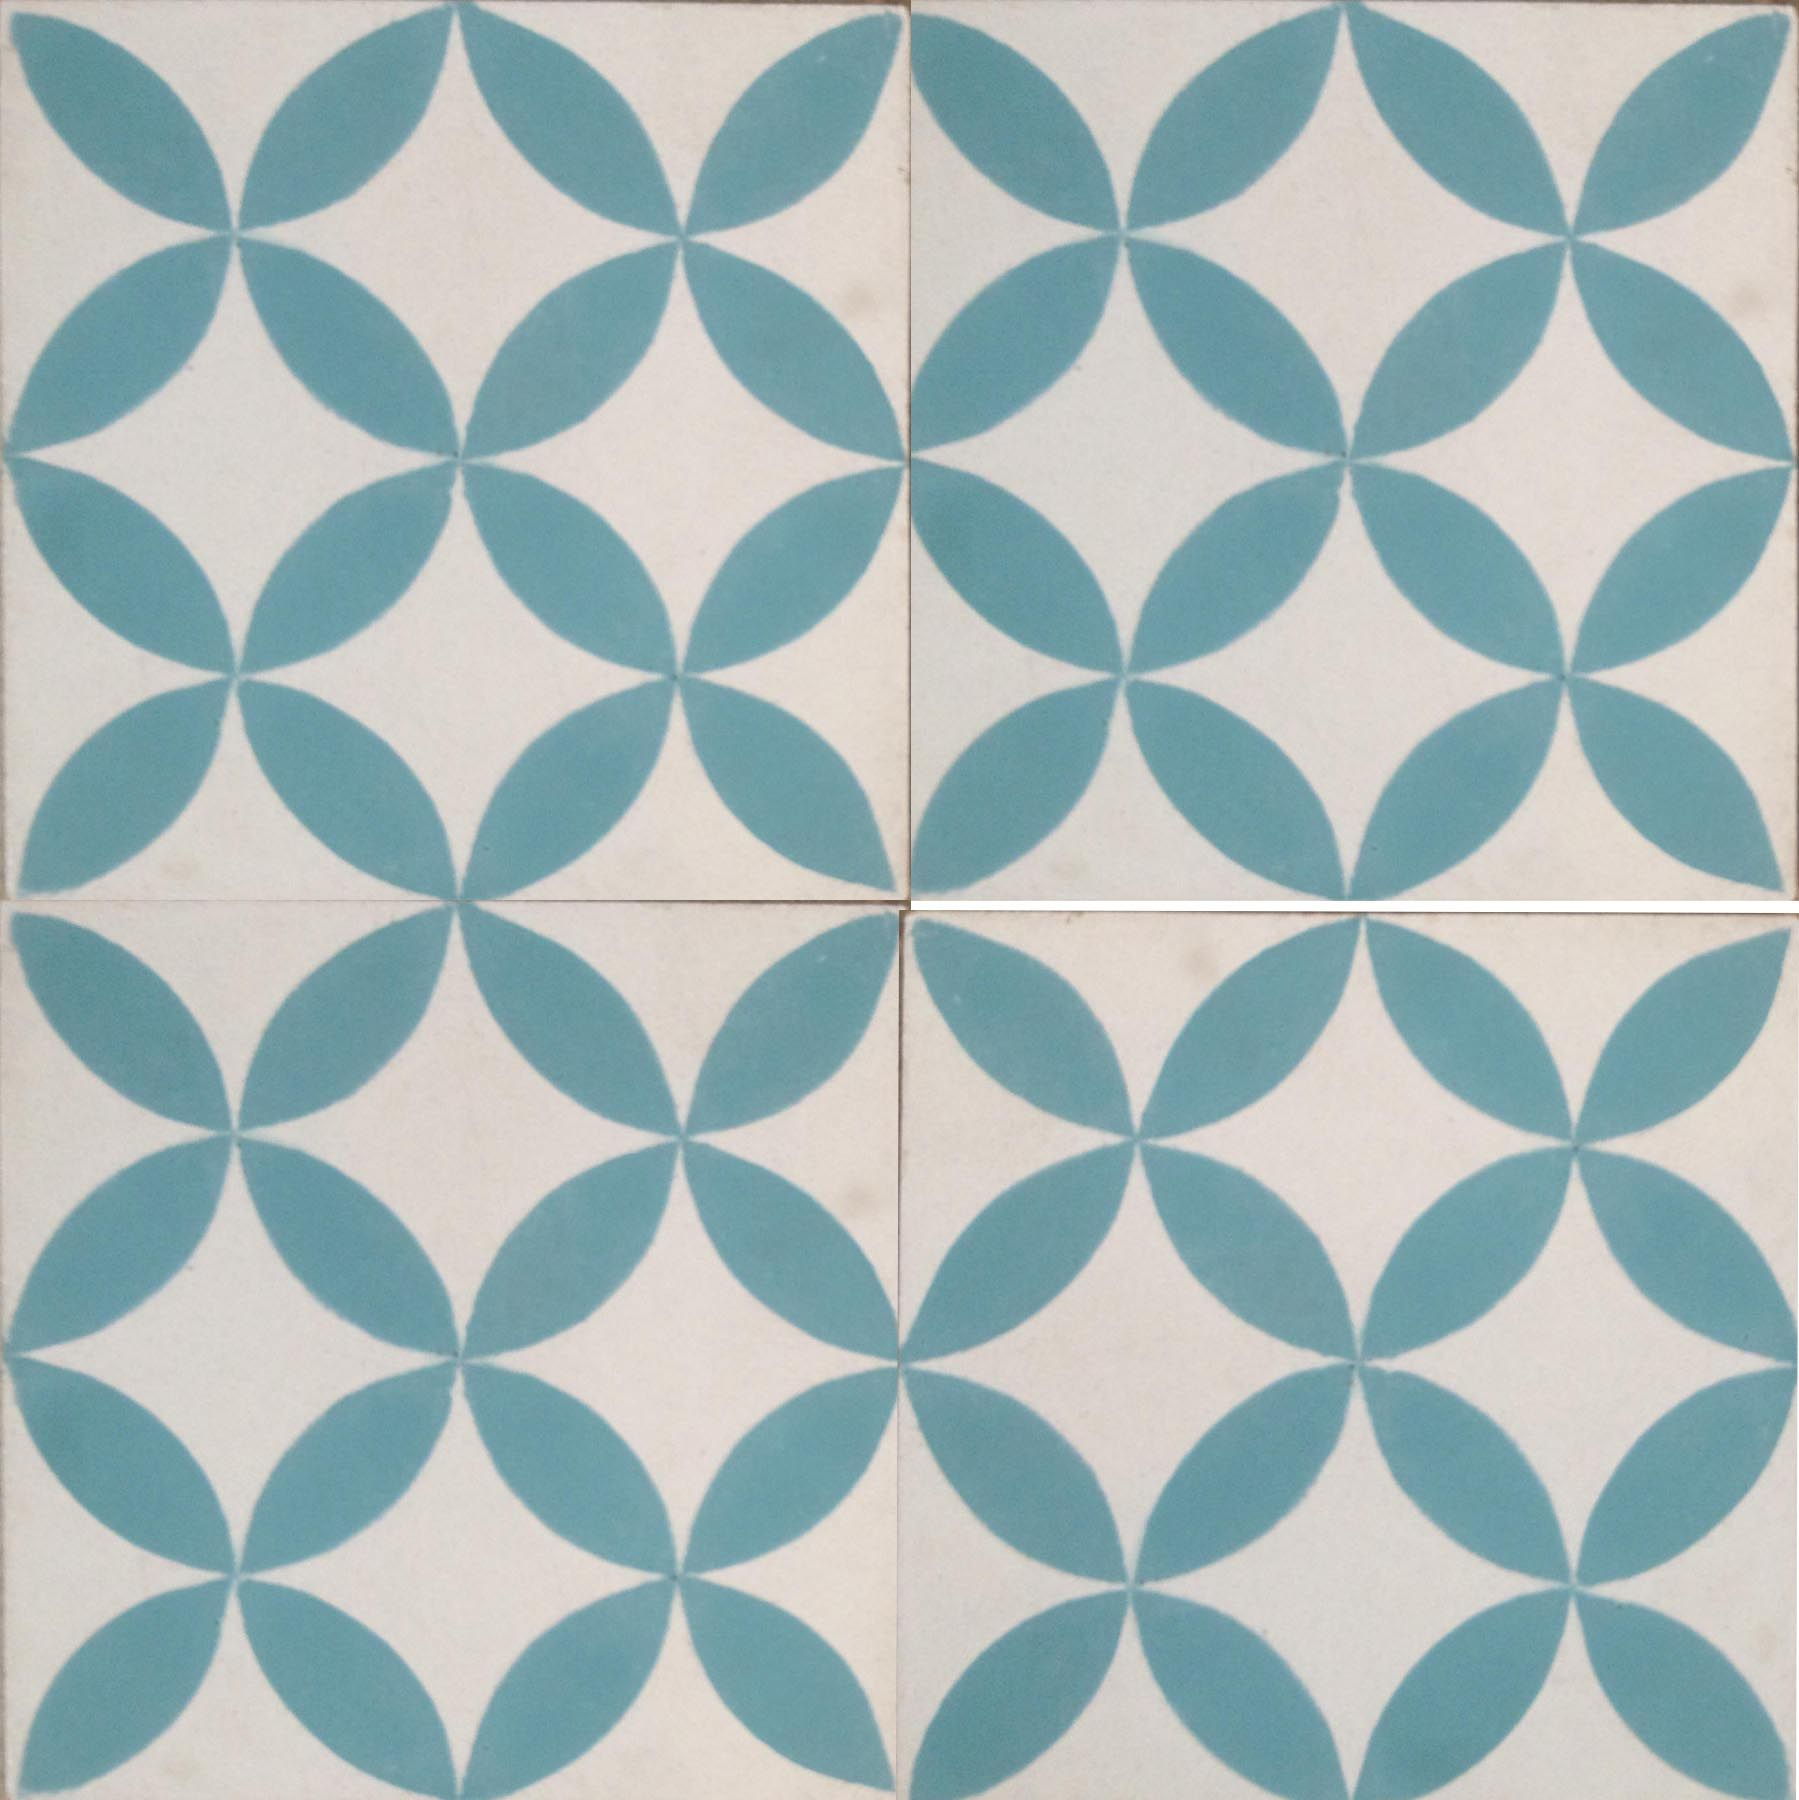 Kitchen Tiles Lincoln petals blue encaustic tile - kids bathroom? | lincoln remodel